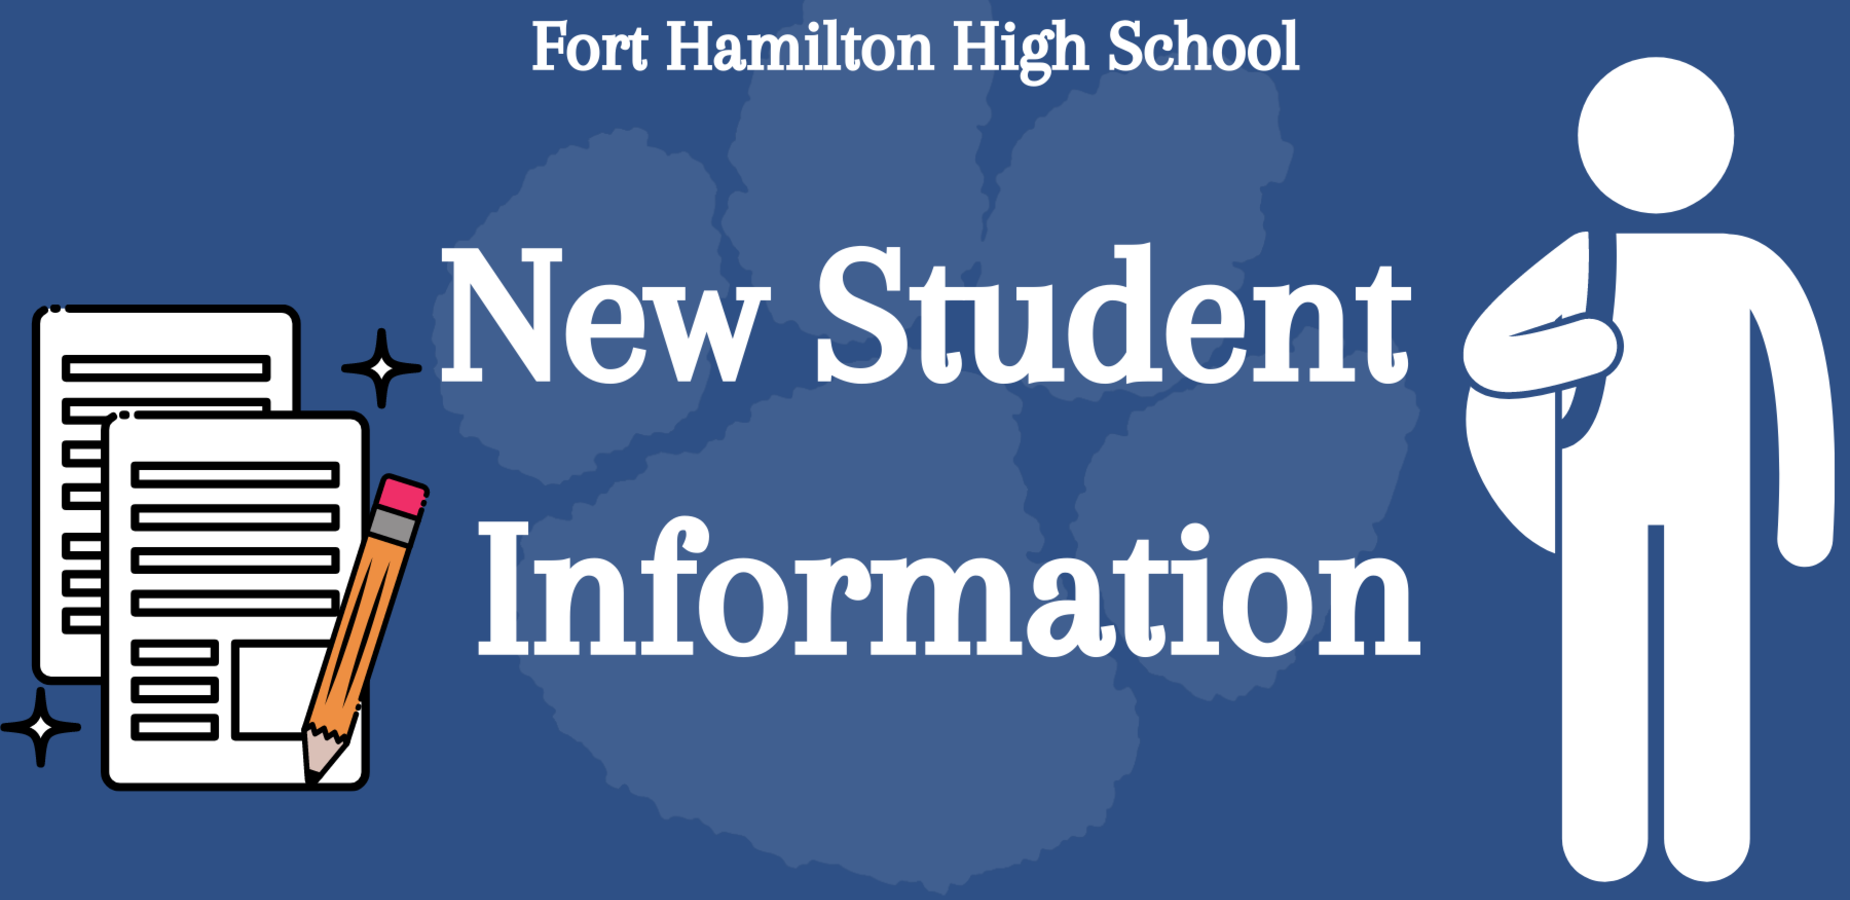 Fort Hamilton High School. New Student Information. A student figure and paper and pencil